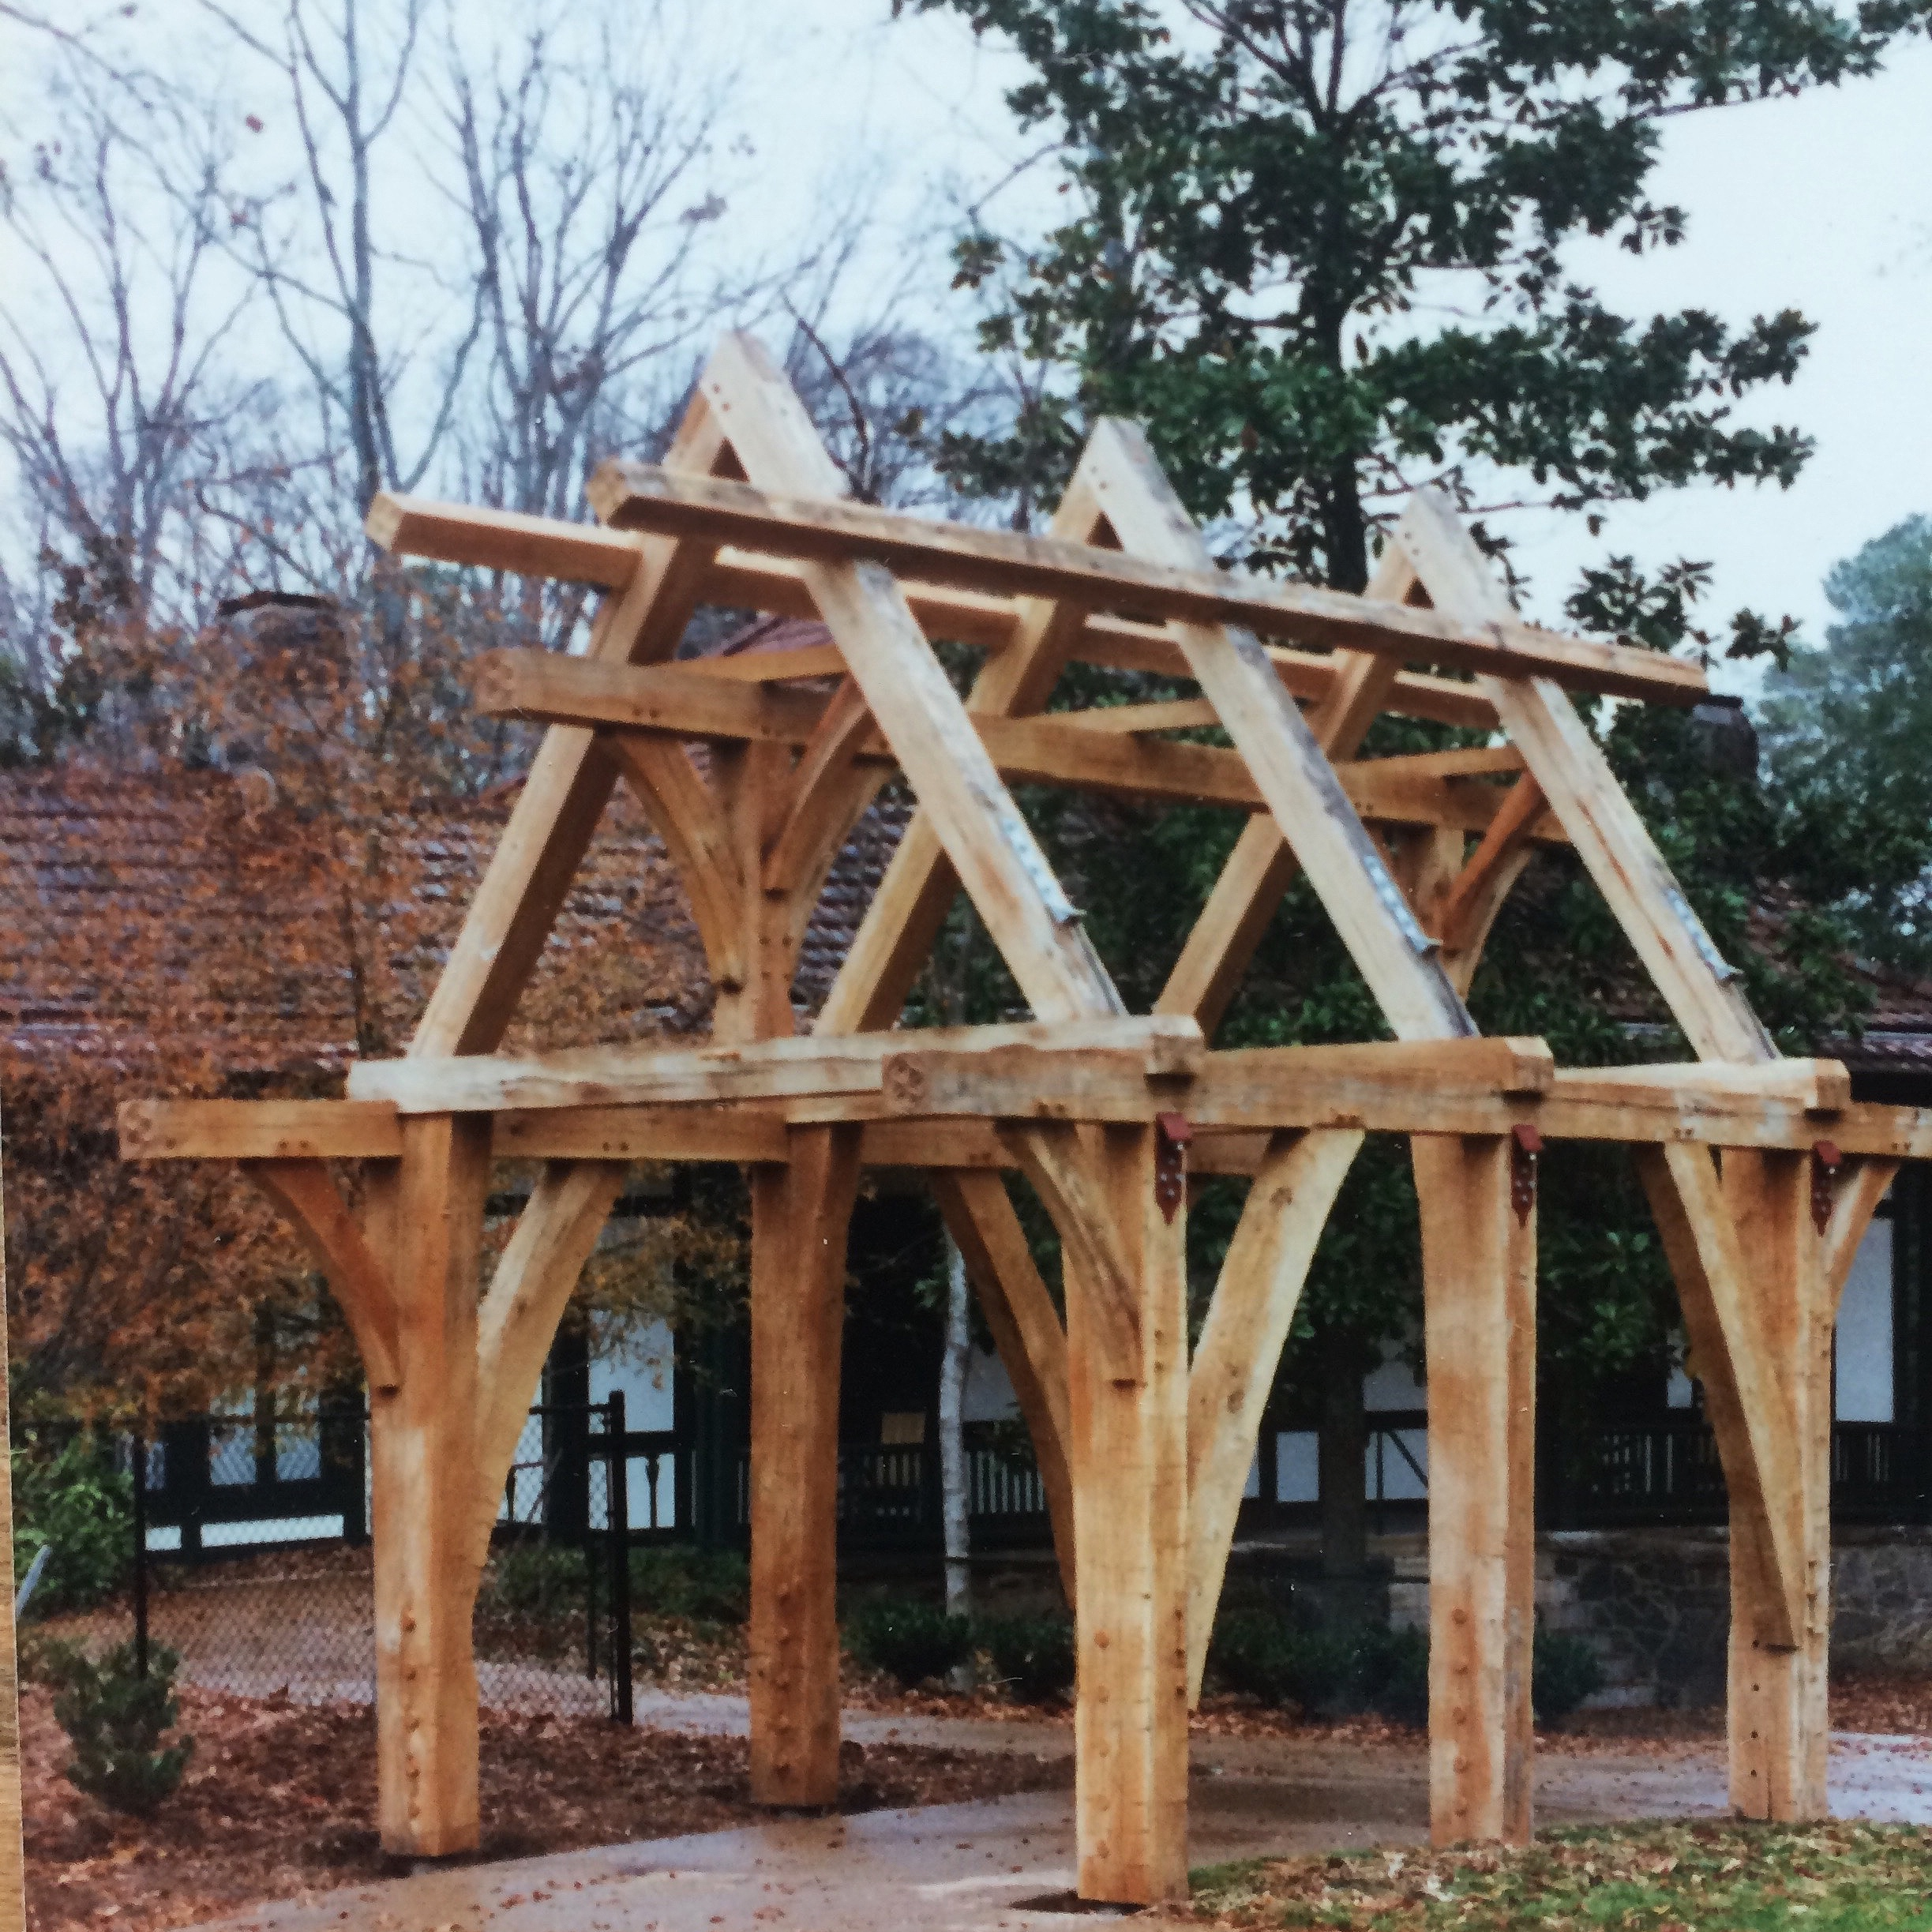 In 1994-1995, I worked with the construction of two timber-framed oak pavilions for St. Philip's Episcopal Cathedral in Atlanta, accessory structures to the rectory (the building in the background) and the parking area. Officially, my role was as a woodcarver, adding details to the framing members which had been cut and fitted before I arrived. Later, I helped with raising and completing the structures. [The lych-gate is a common feature in the English landscape, the separation between the church and the churchyard (or cemetery). Traditionally, a body was laid out in the lych-gate prior to interment.]